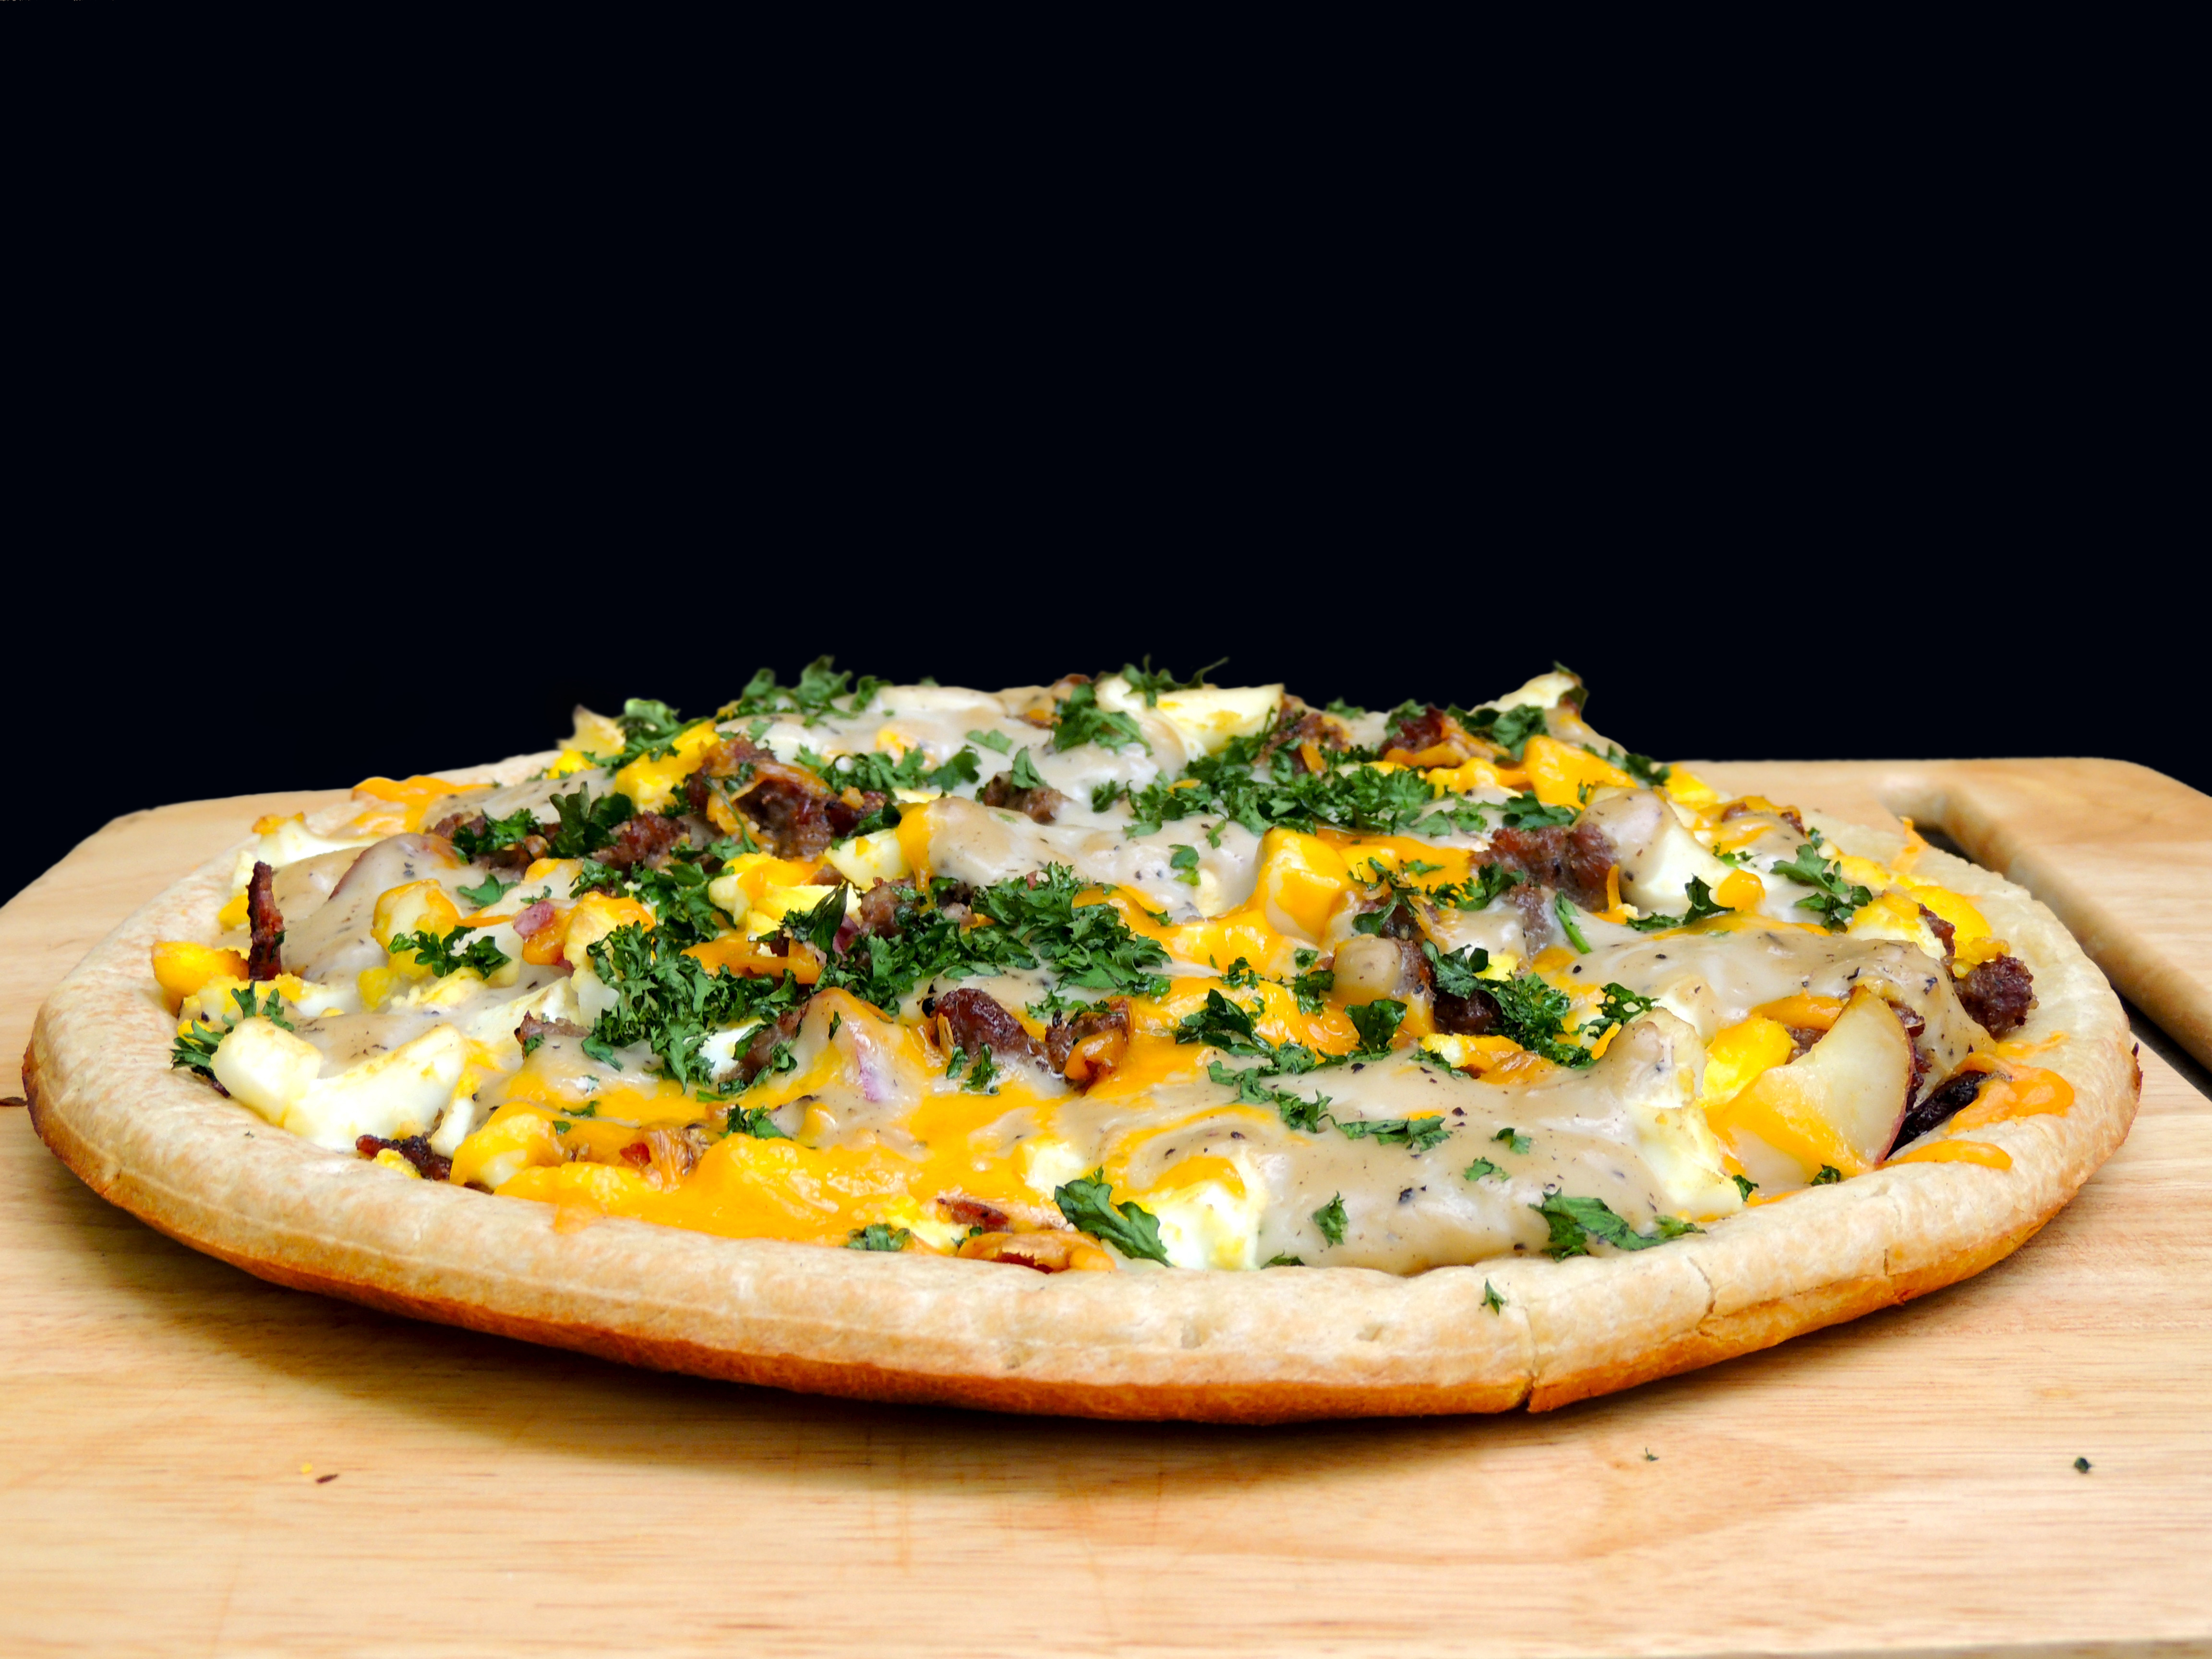 The Ultimate Grilled Breakfast Pizza